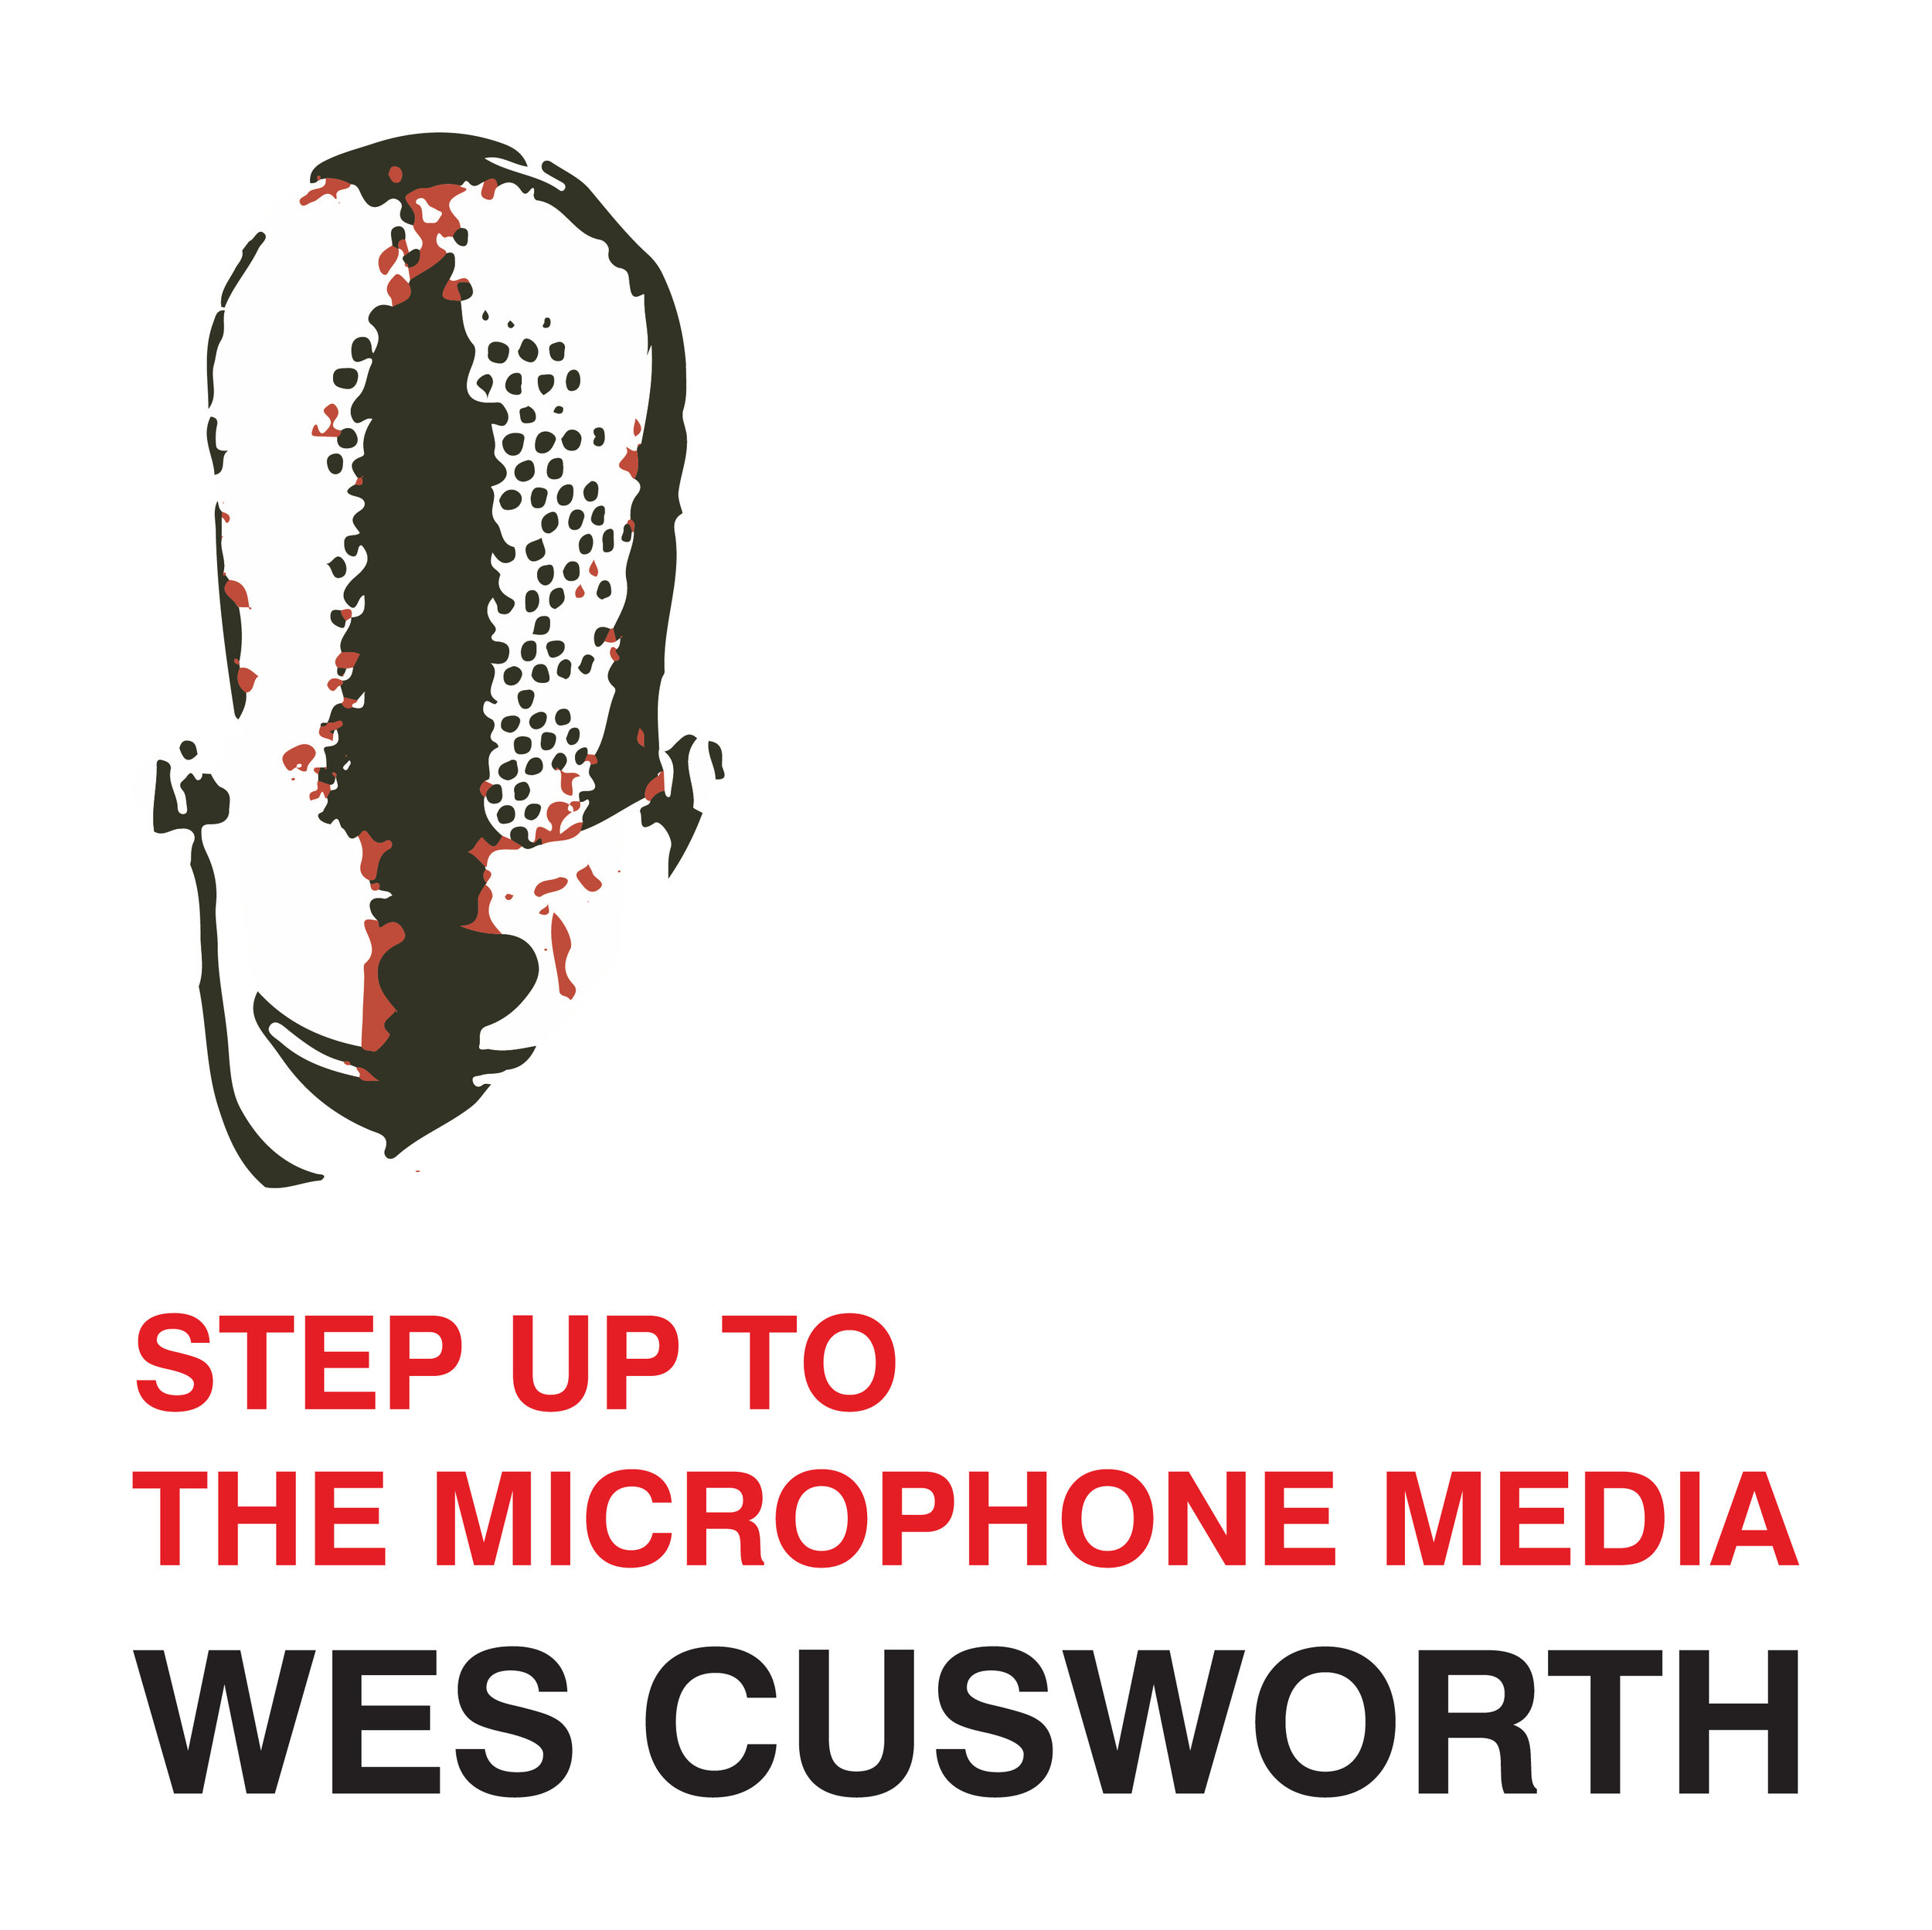 Wes - Master of Ceremonies |TV Journalist | Sports Commentator |Sports Videographer | 0417 307 067